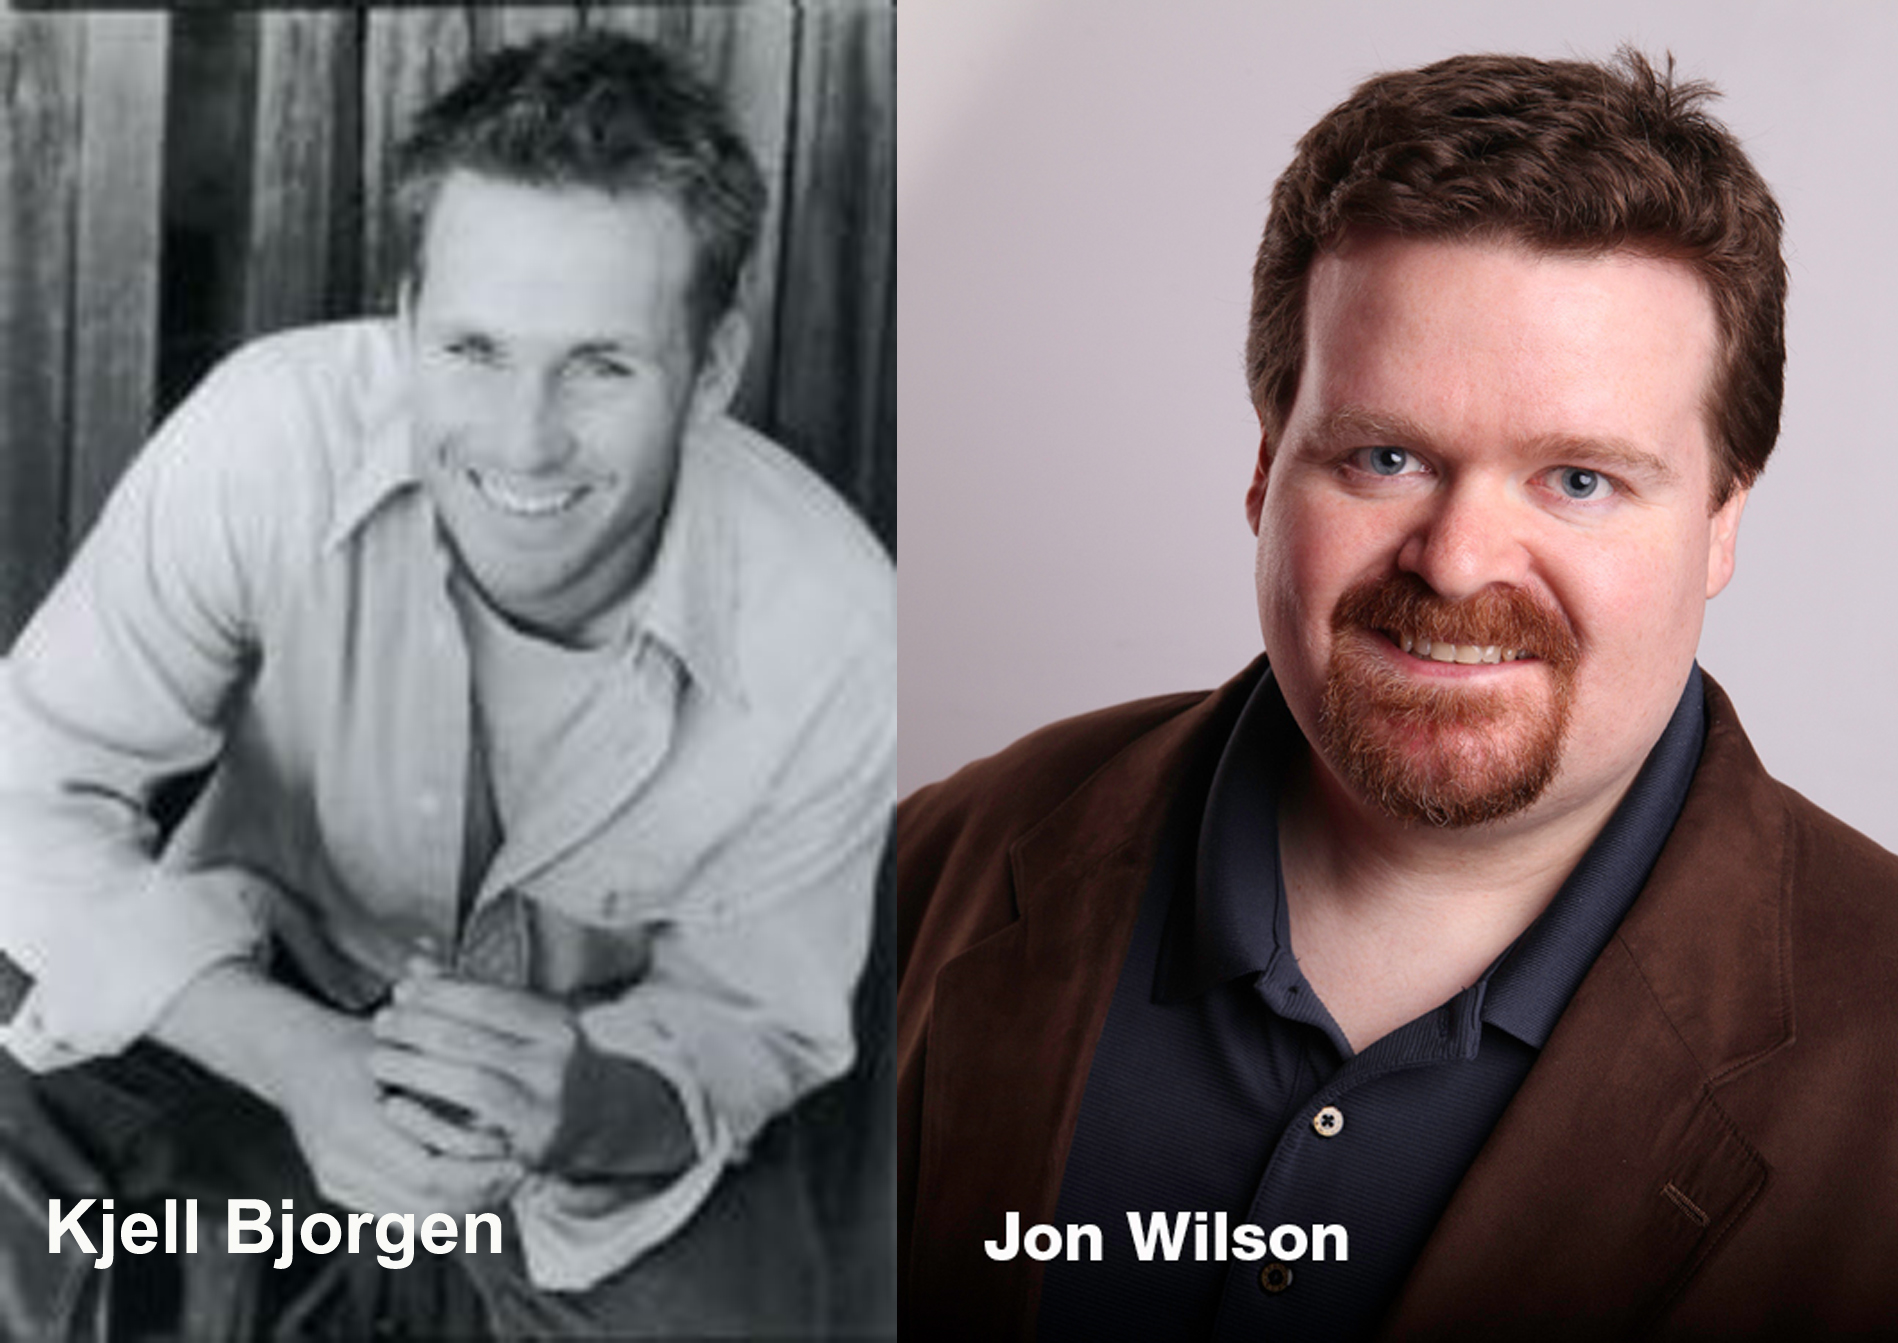 The Live Feed Presents: The Comedy of Kjell Bjorgen and Jon Wilson